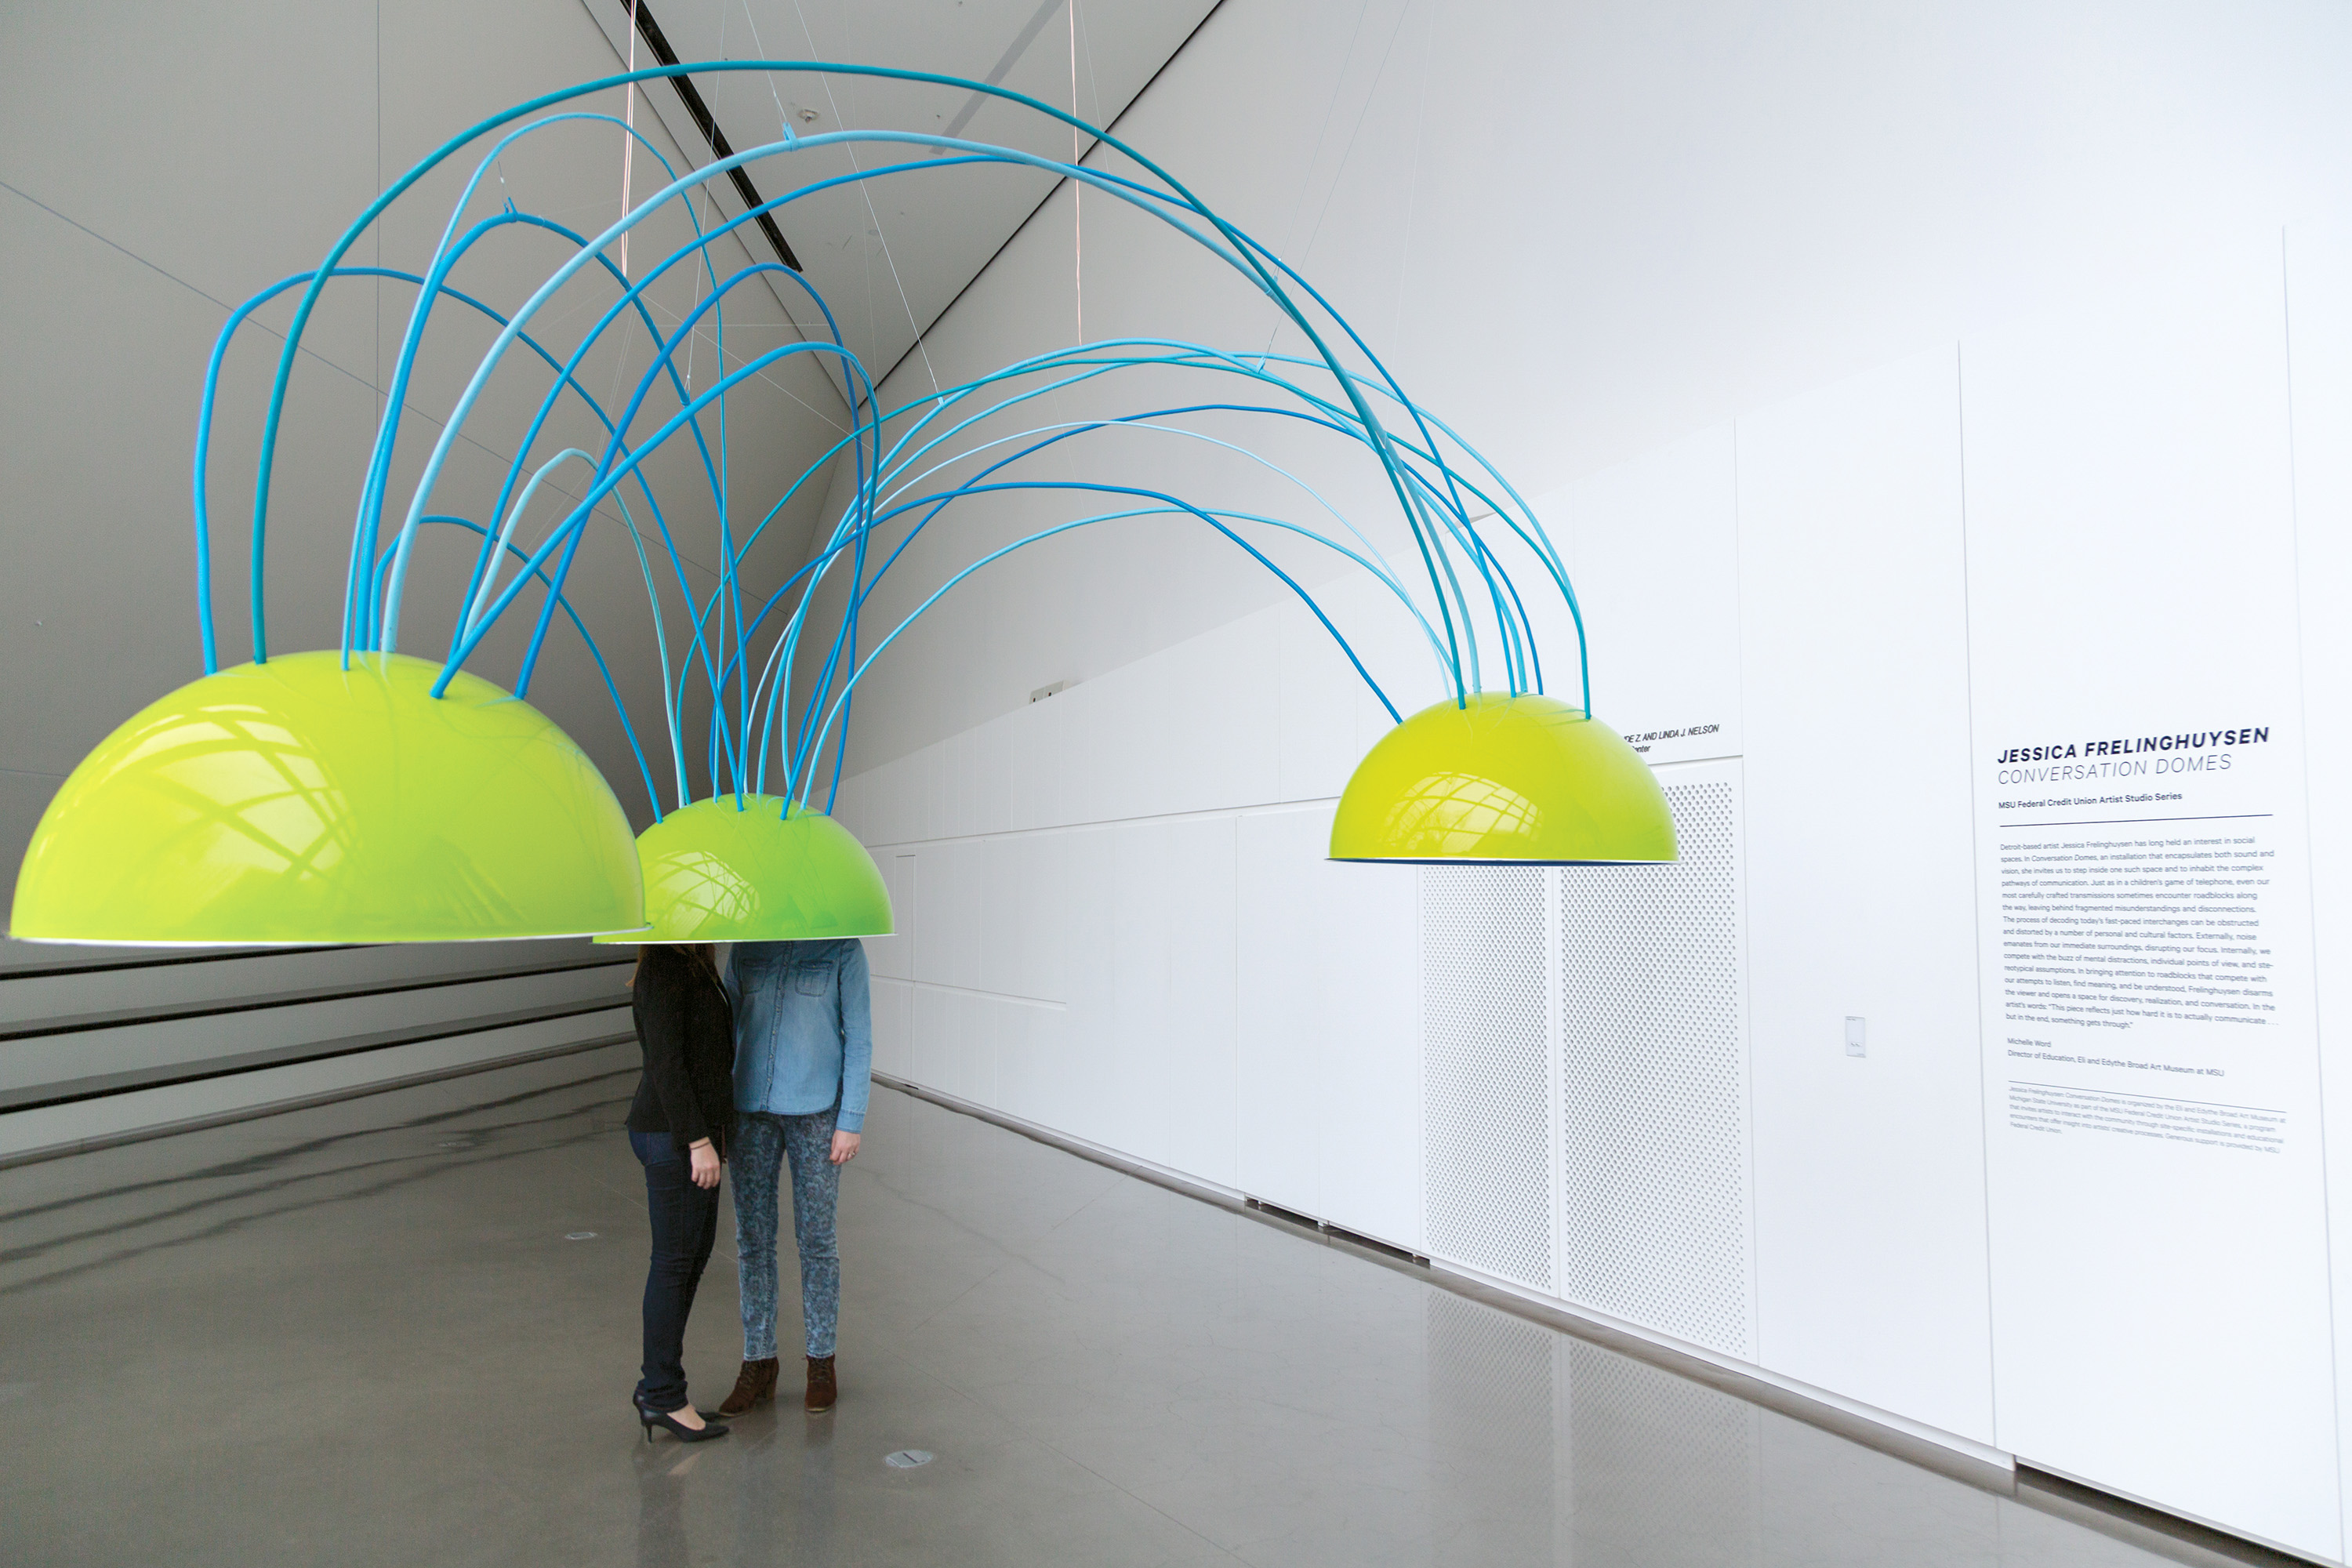 <i>Jessica Frelinghuysen: Conversation Domes</i>, installation view at the Eli and Edythe Broad Art Museum at Michigan State University, 2014. Photo: MSU Broad